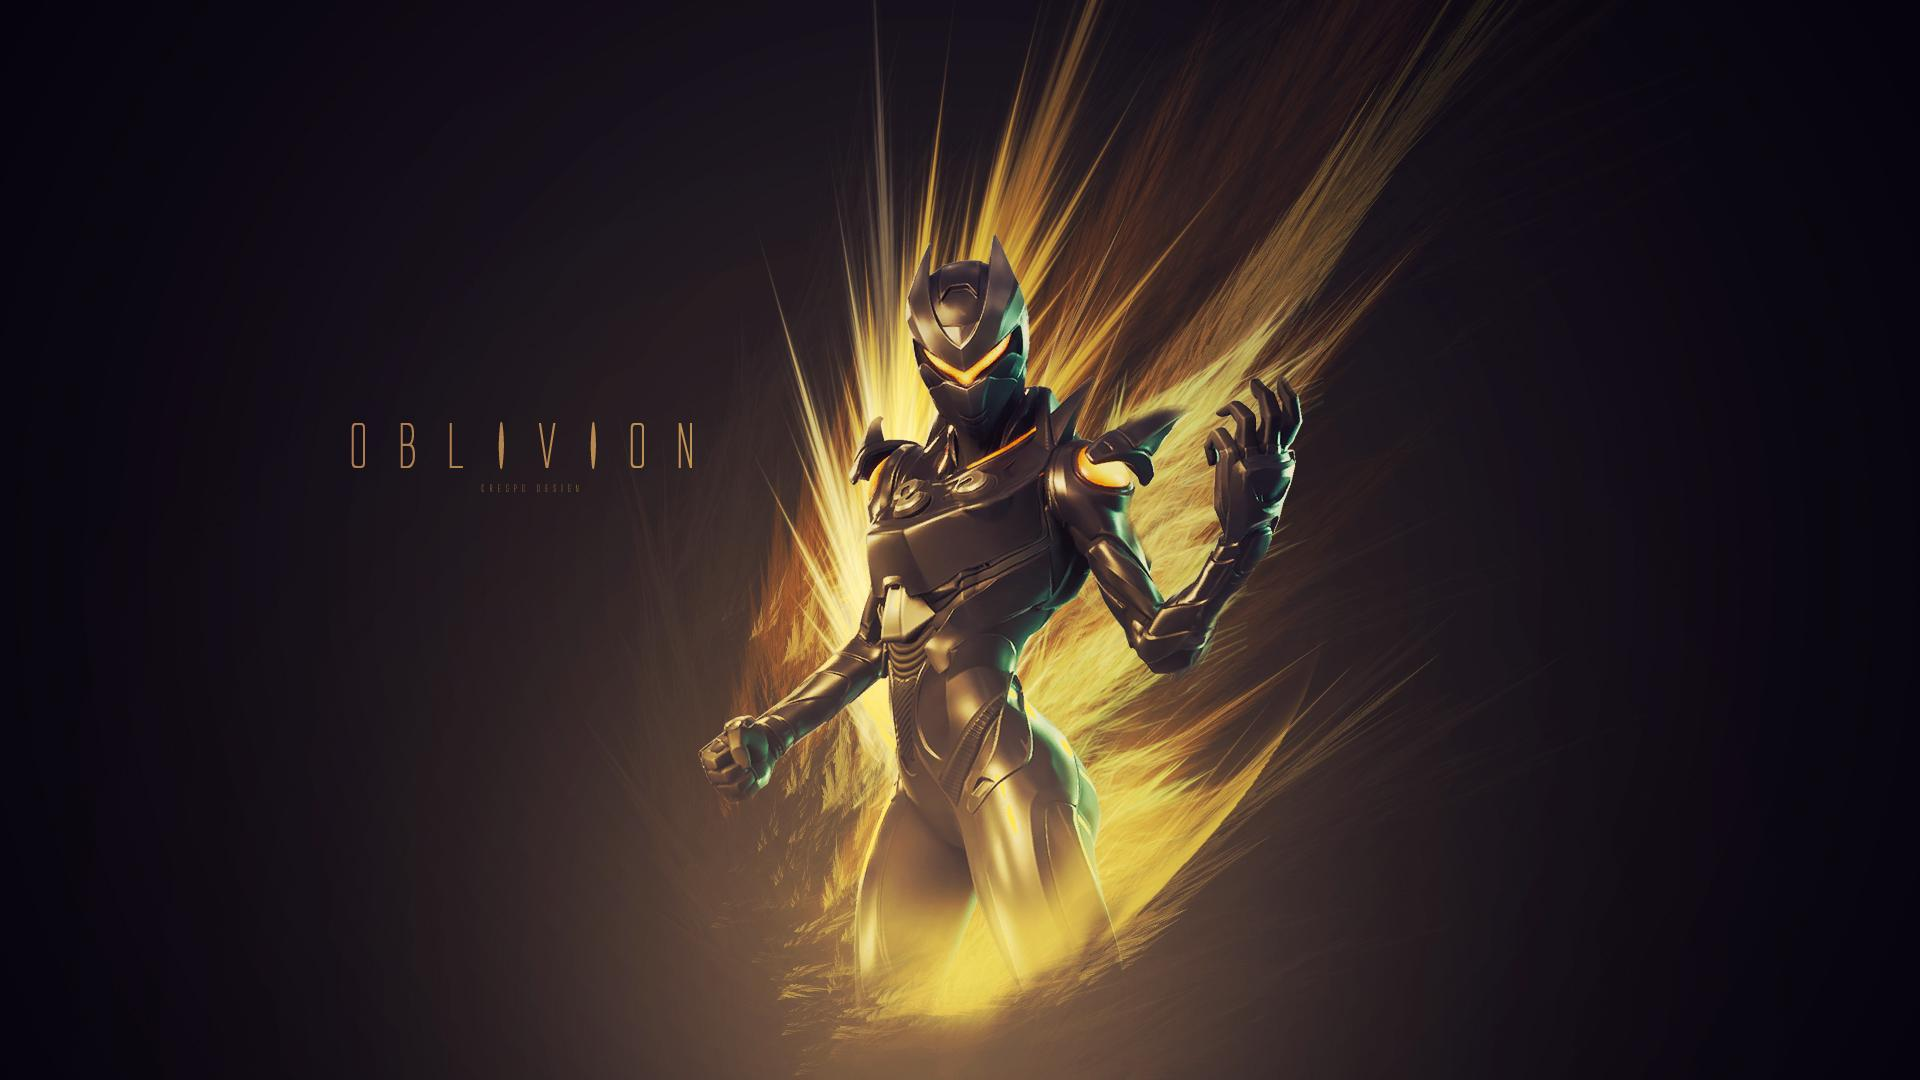 wp3838462-oblivion-fortnite-wallpapers